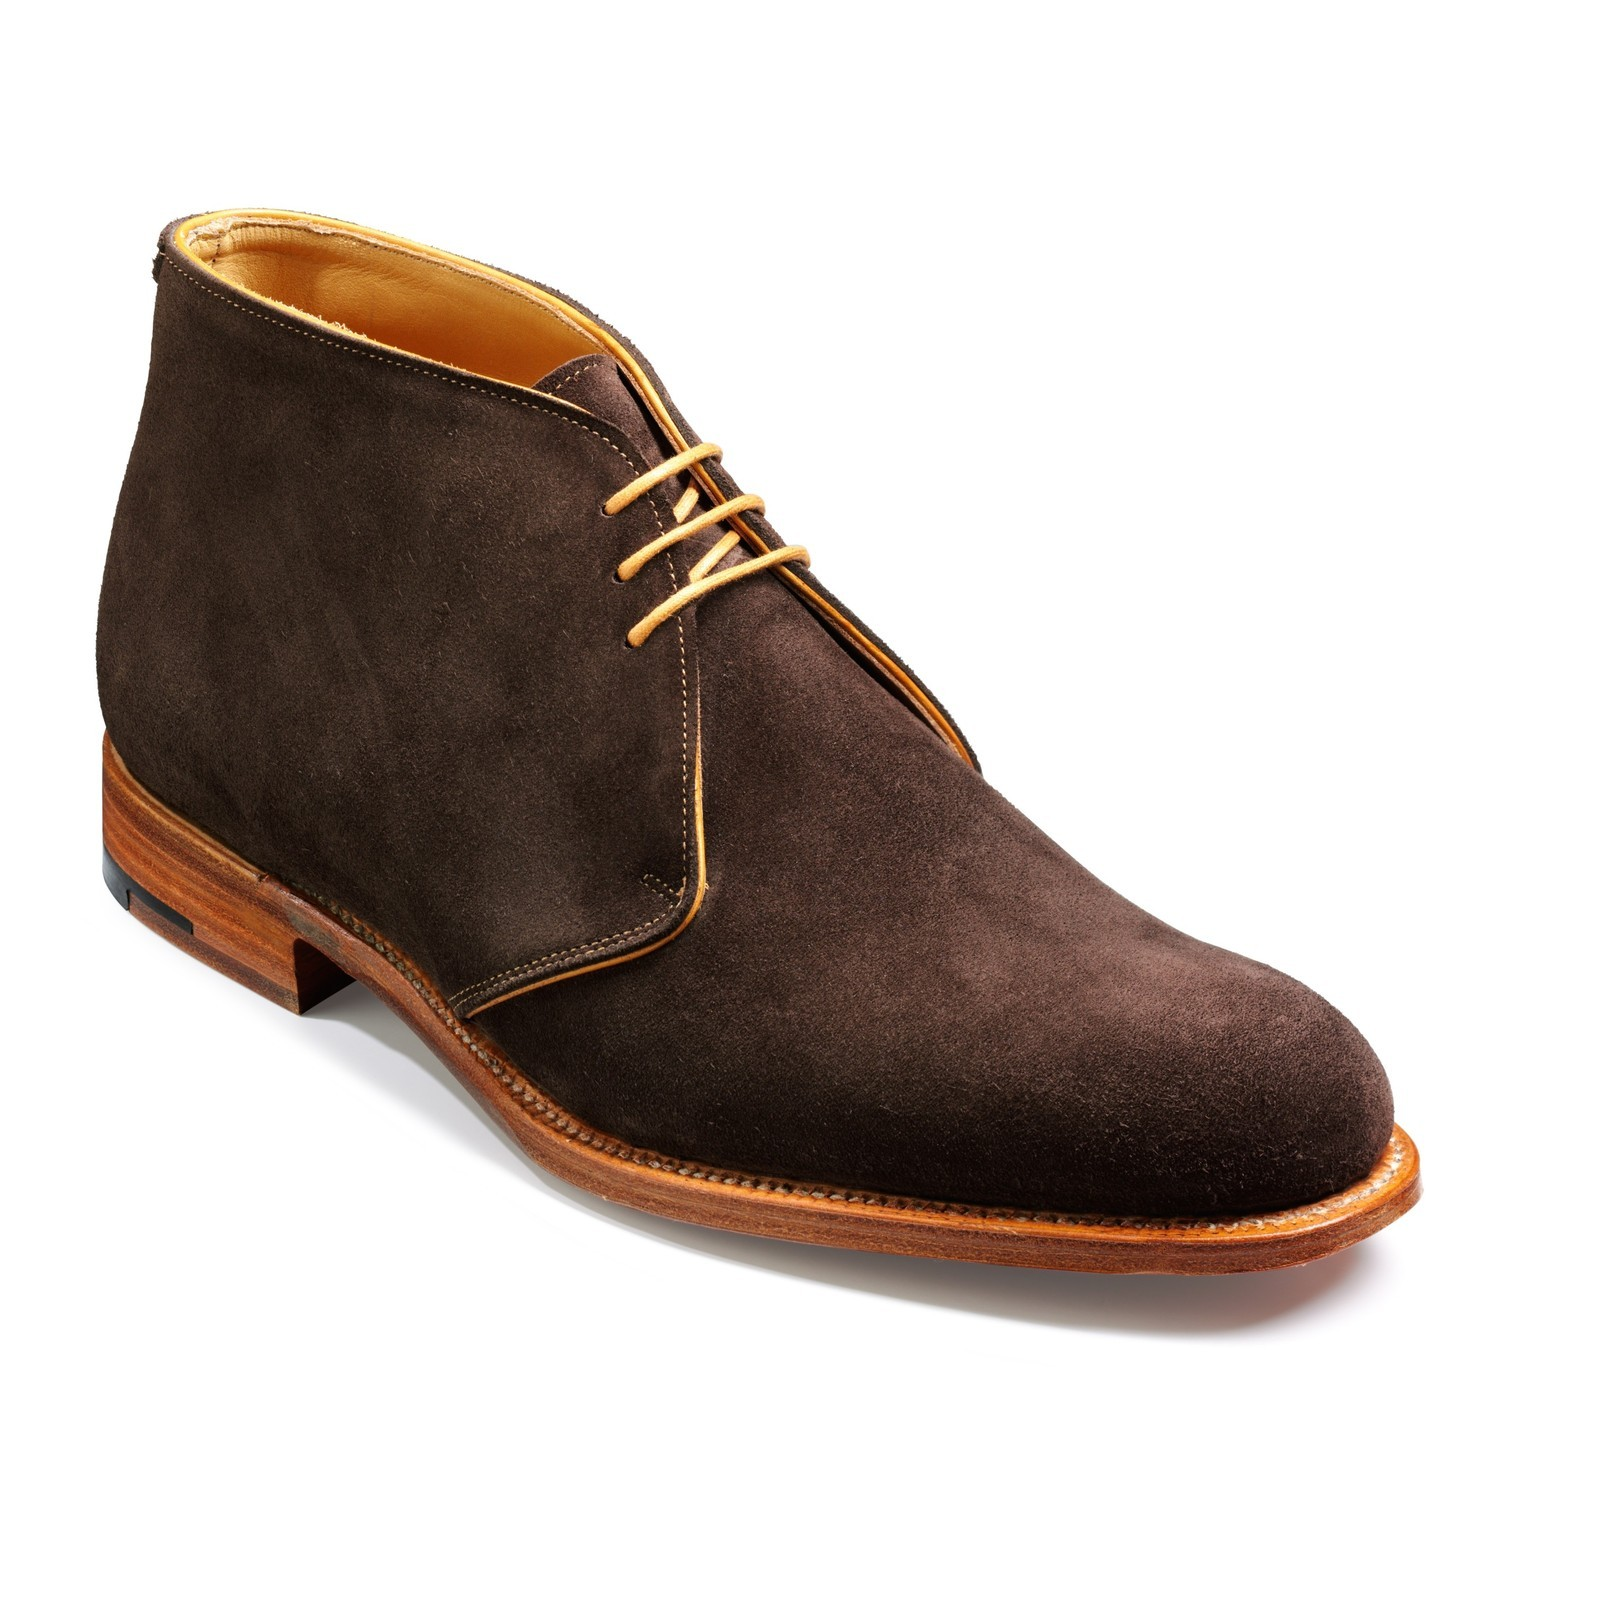 Primary image for Handmade chukka boots for men suede leather boots for men custom leather boots